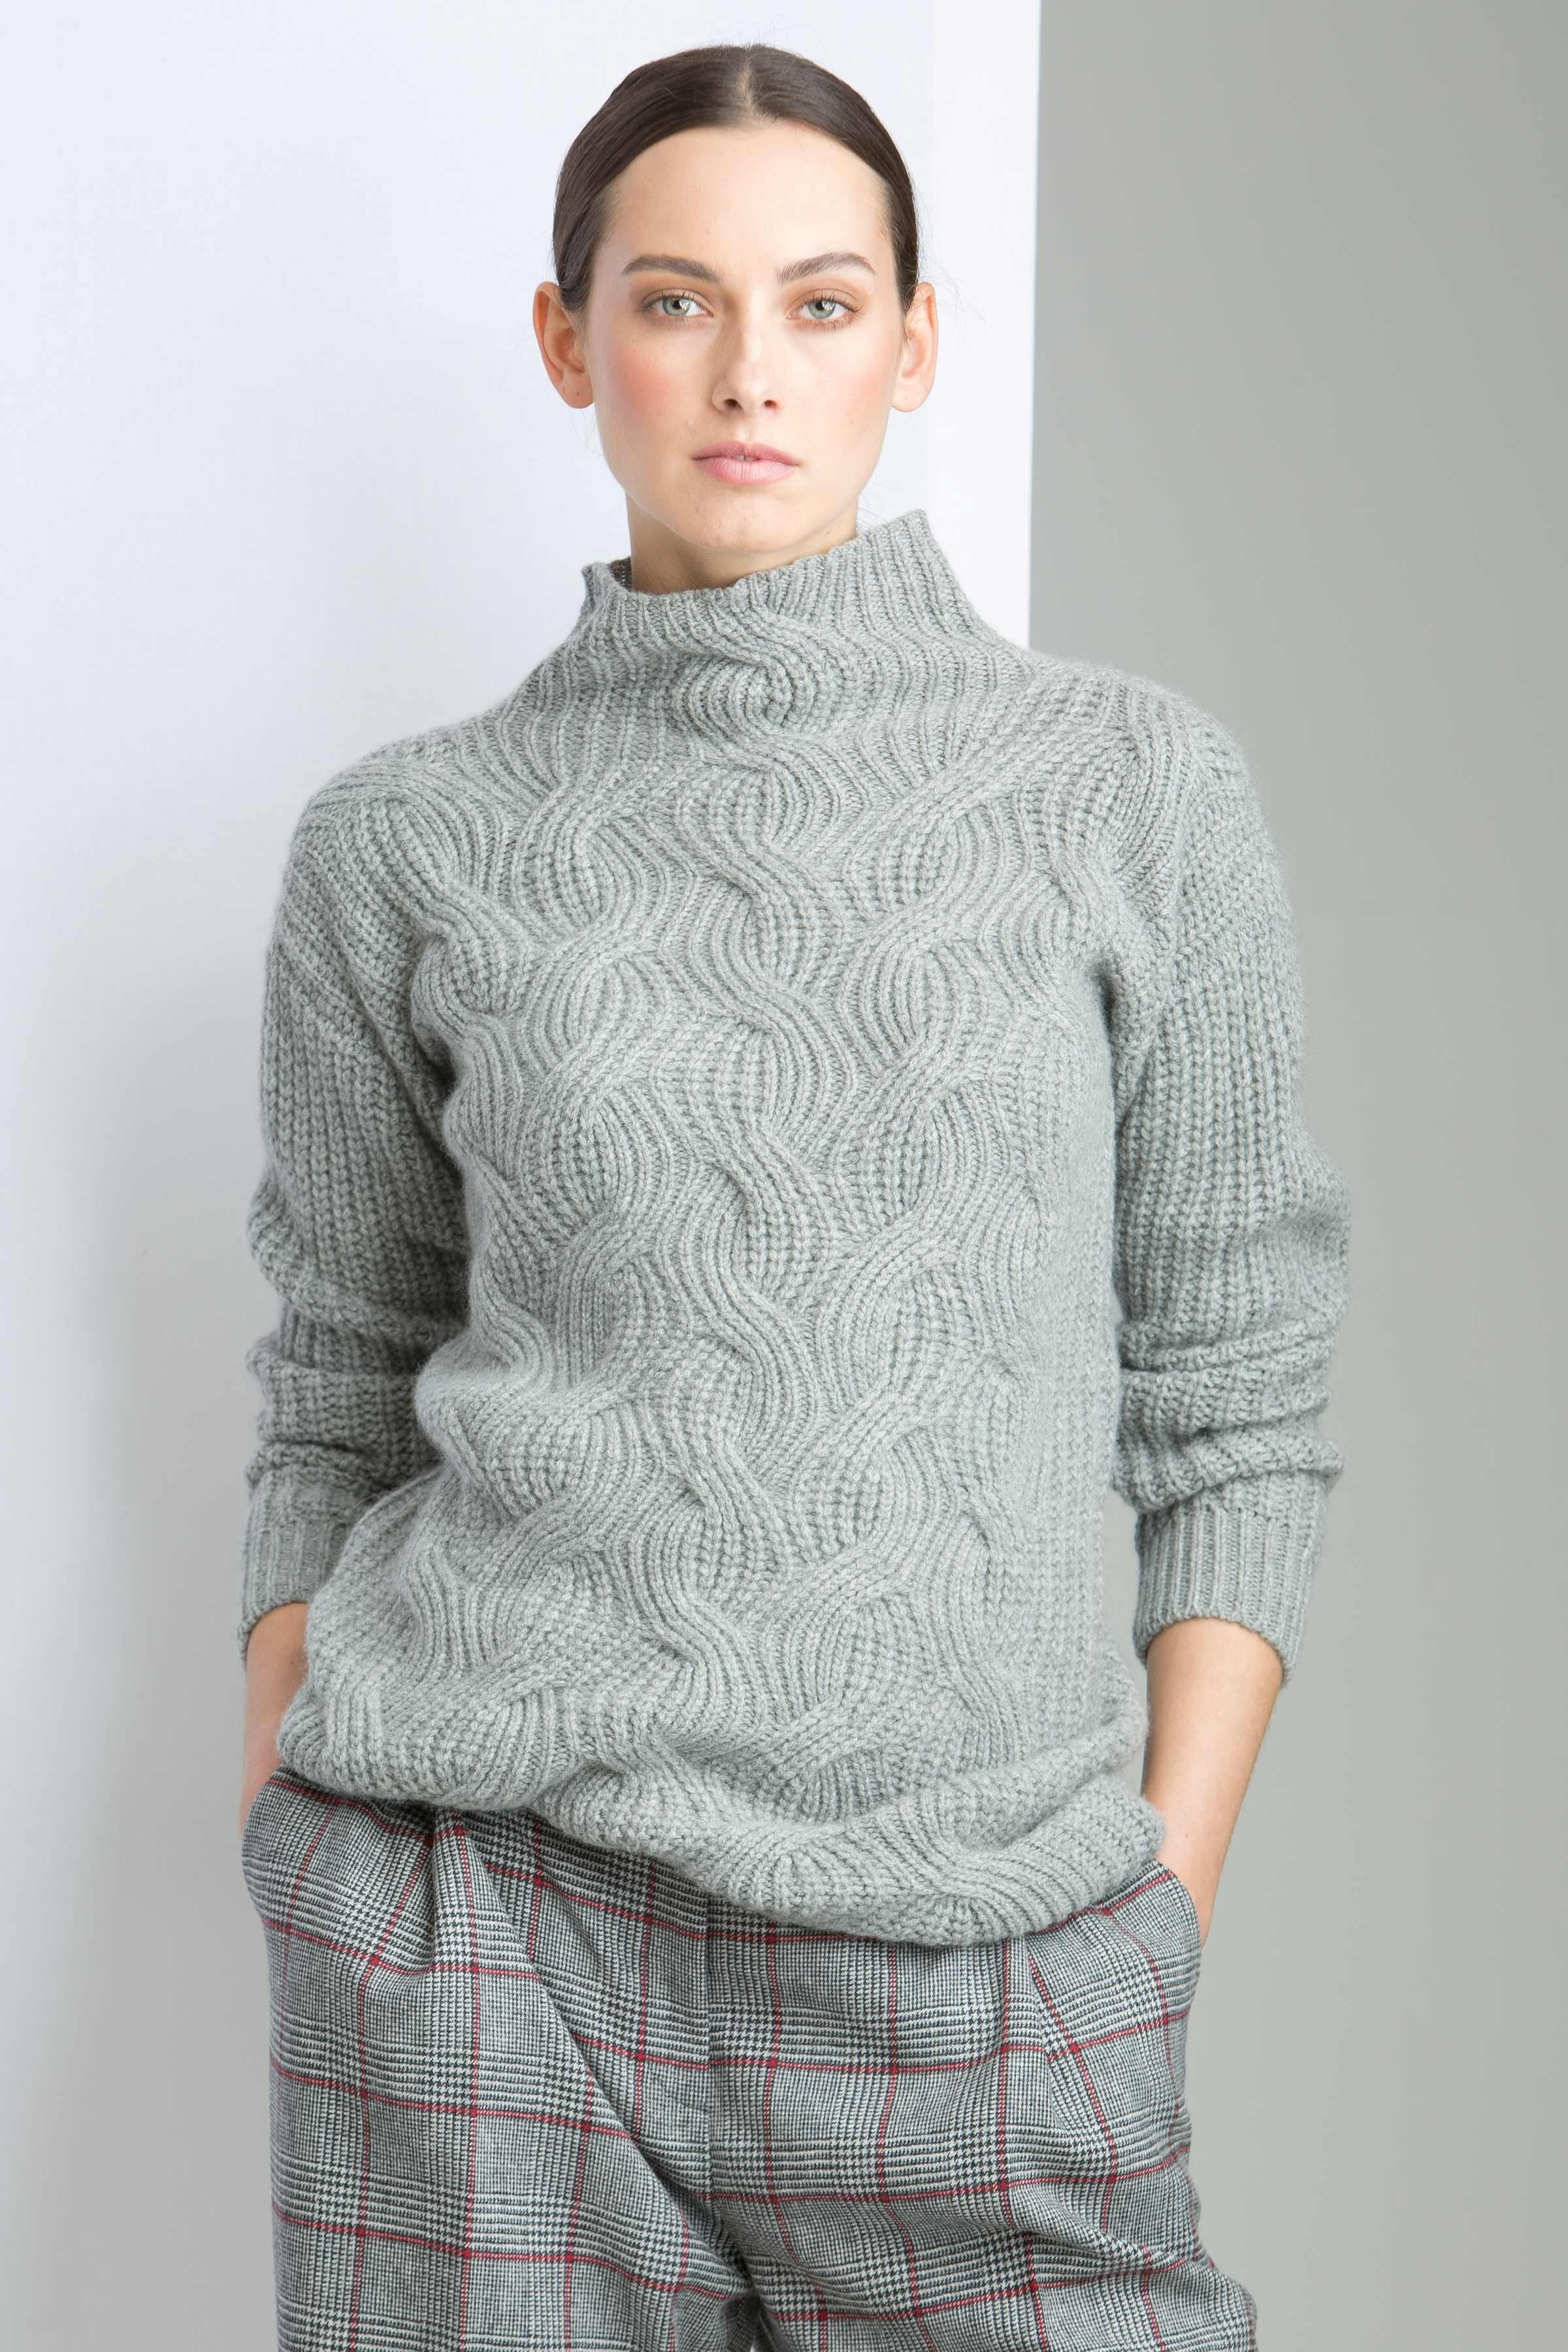 f5a10079822bf8 Cashmere rib and cable with integral turtle neck in a wardrobe staple of  light grey - made in Scotland by Johnstons of Elgin. Our cable front piece  showcase ...